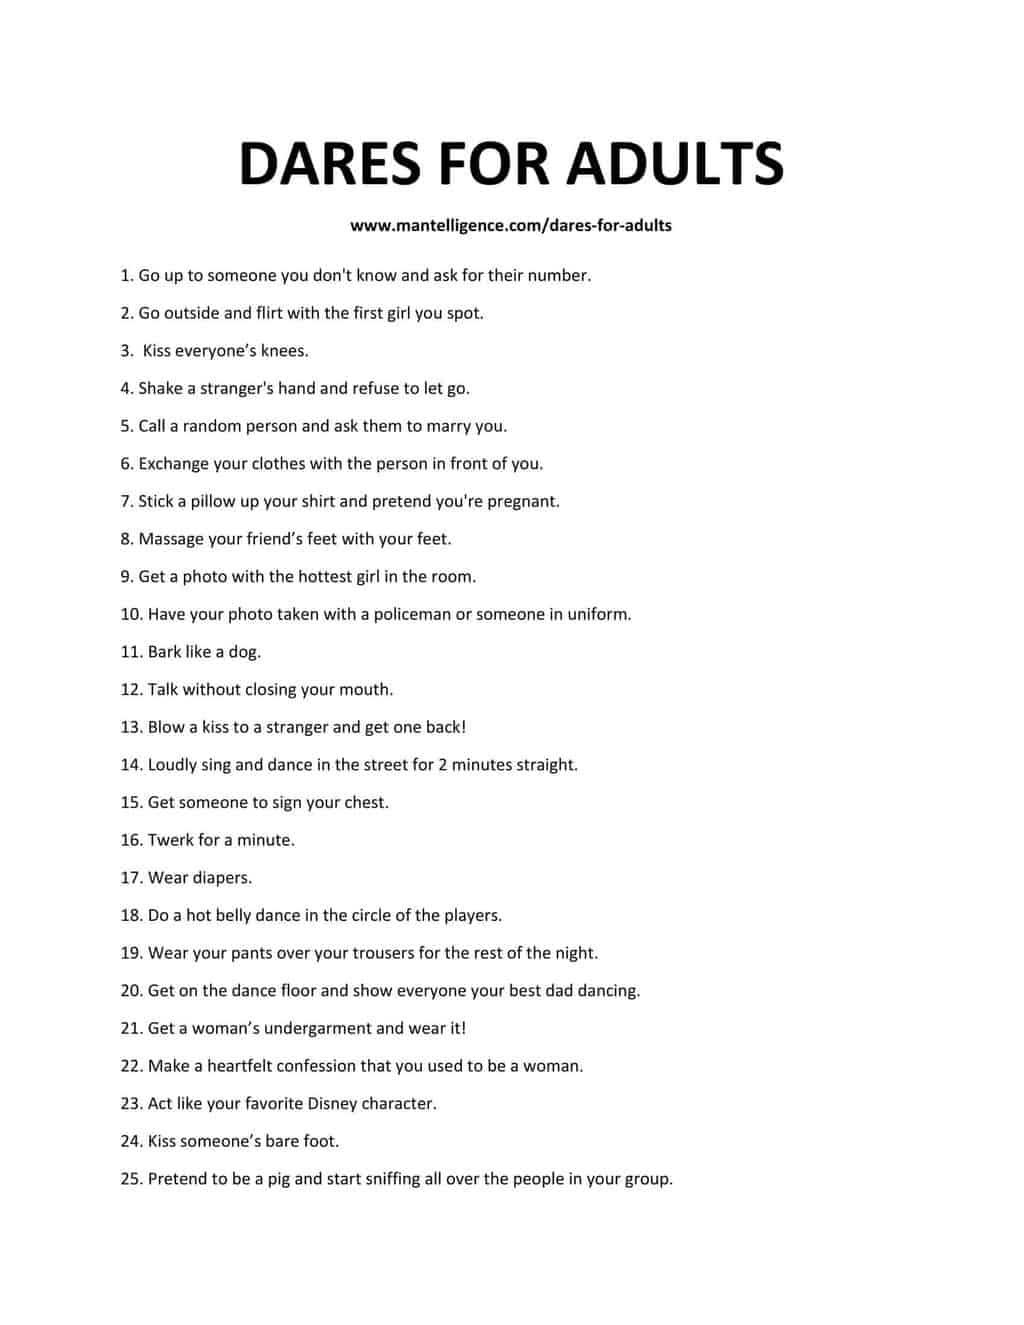 DARES FOR ADULTS-1